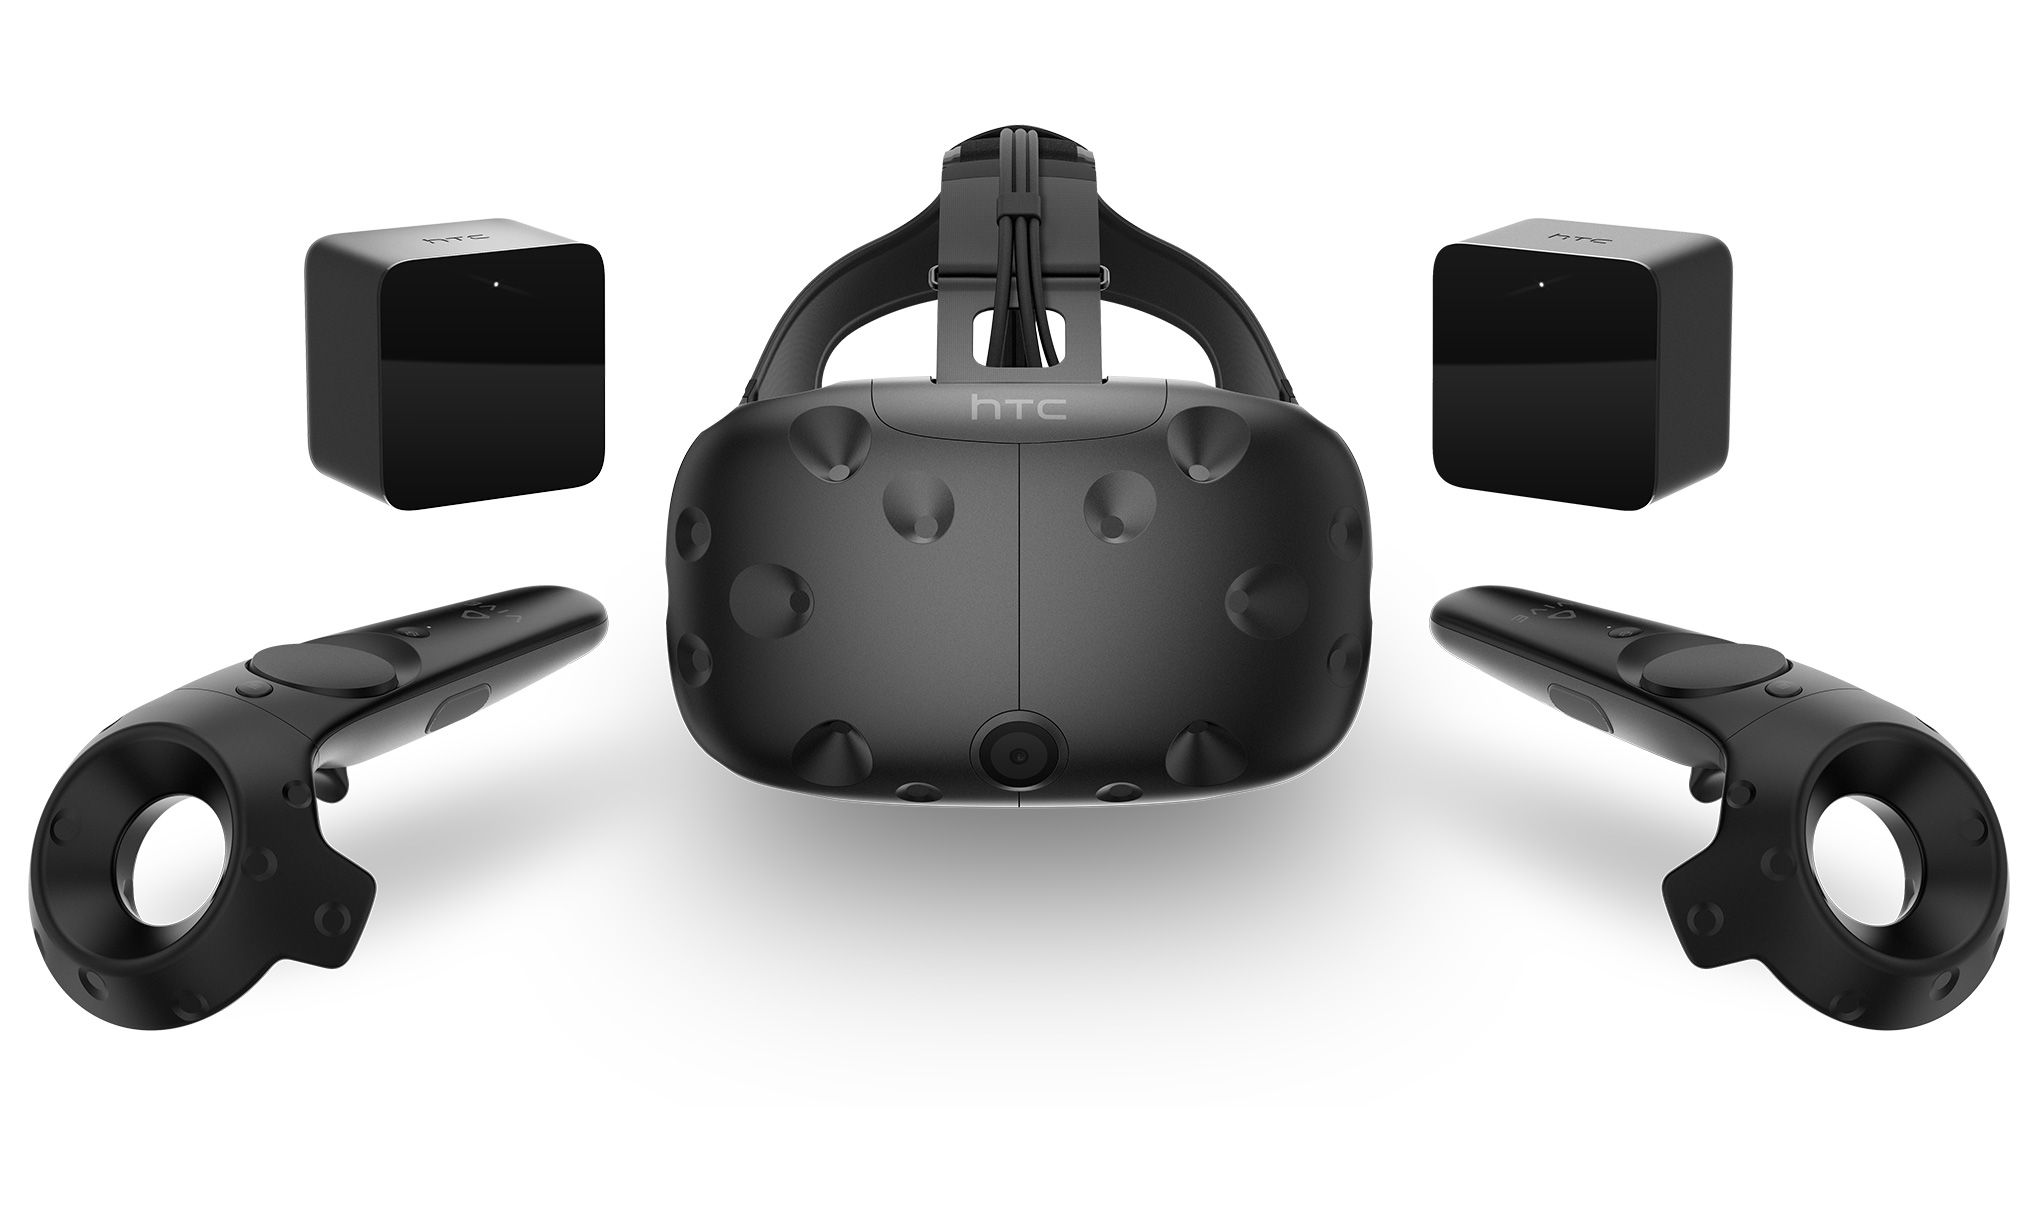 htc-vive-set-0